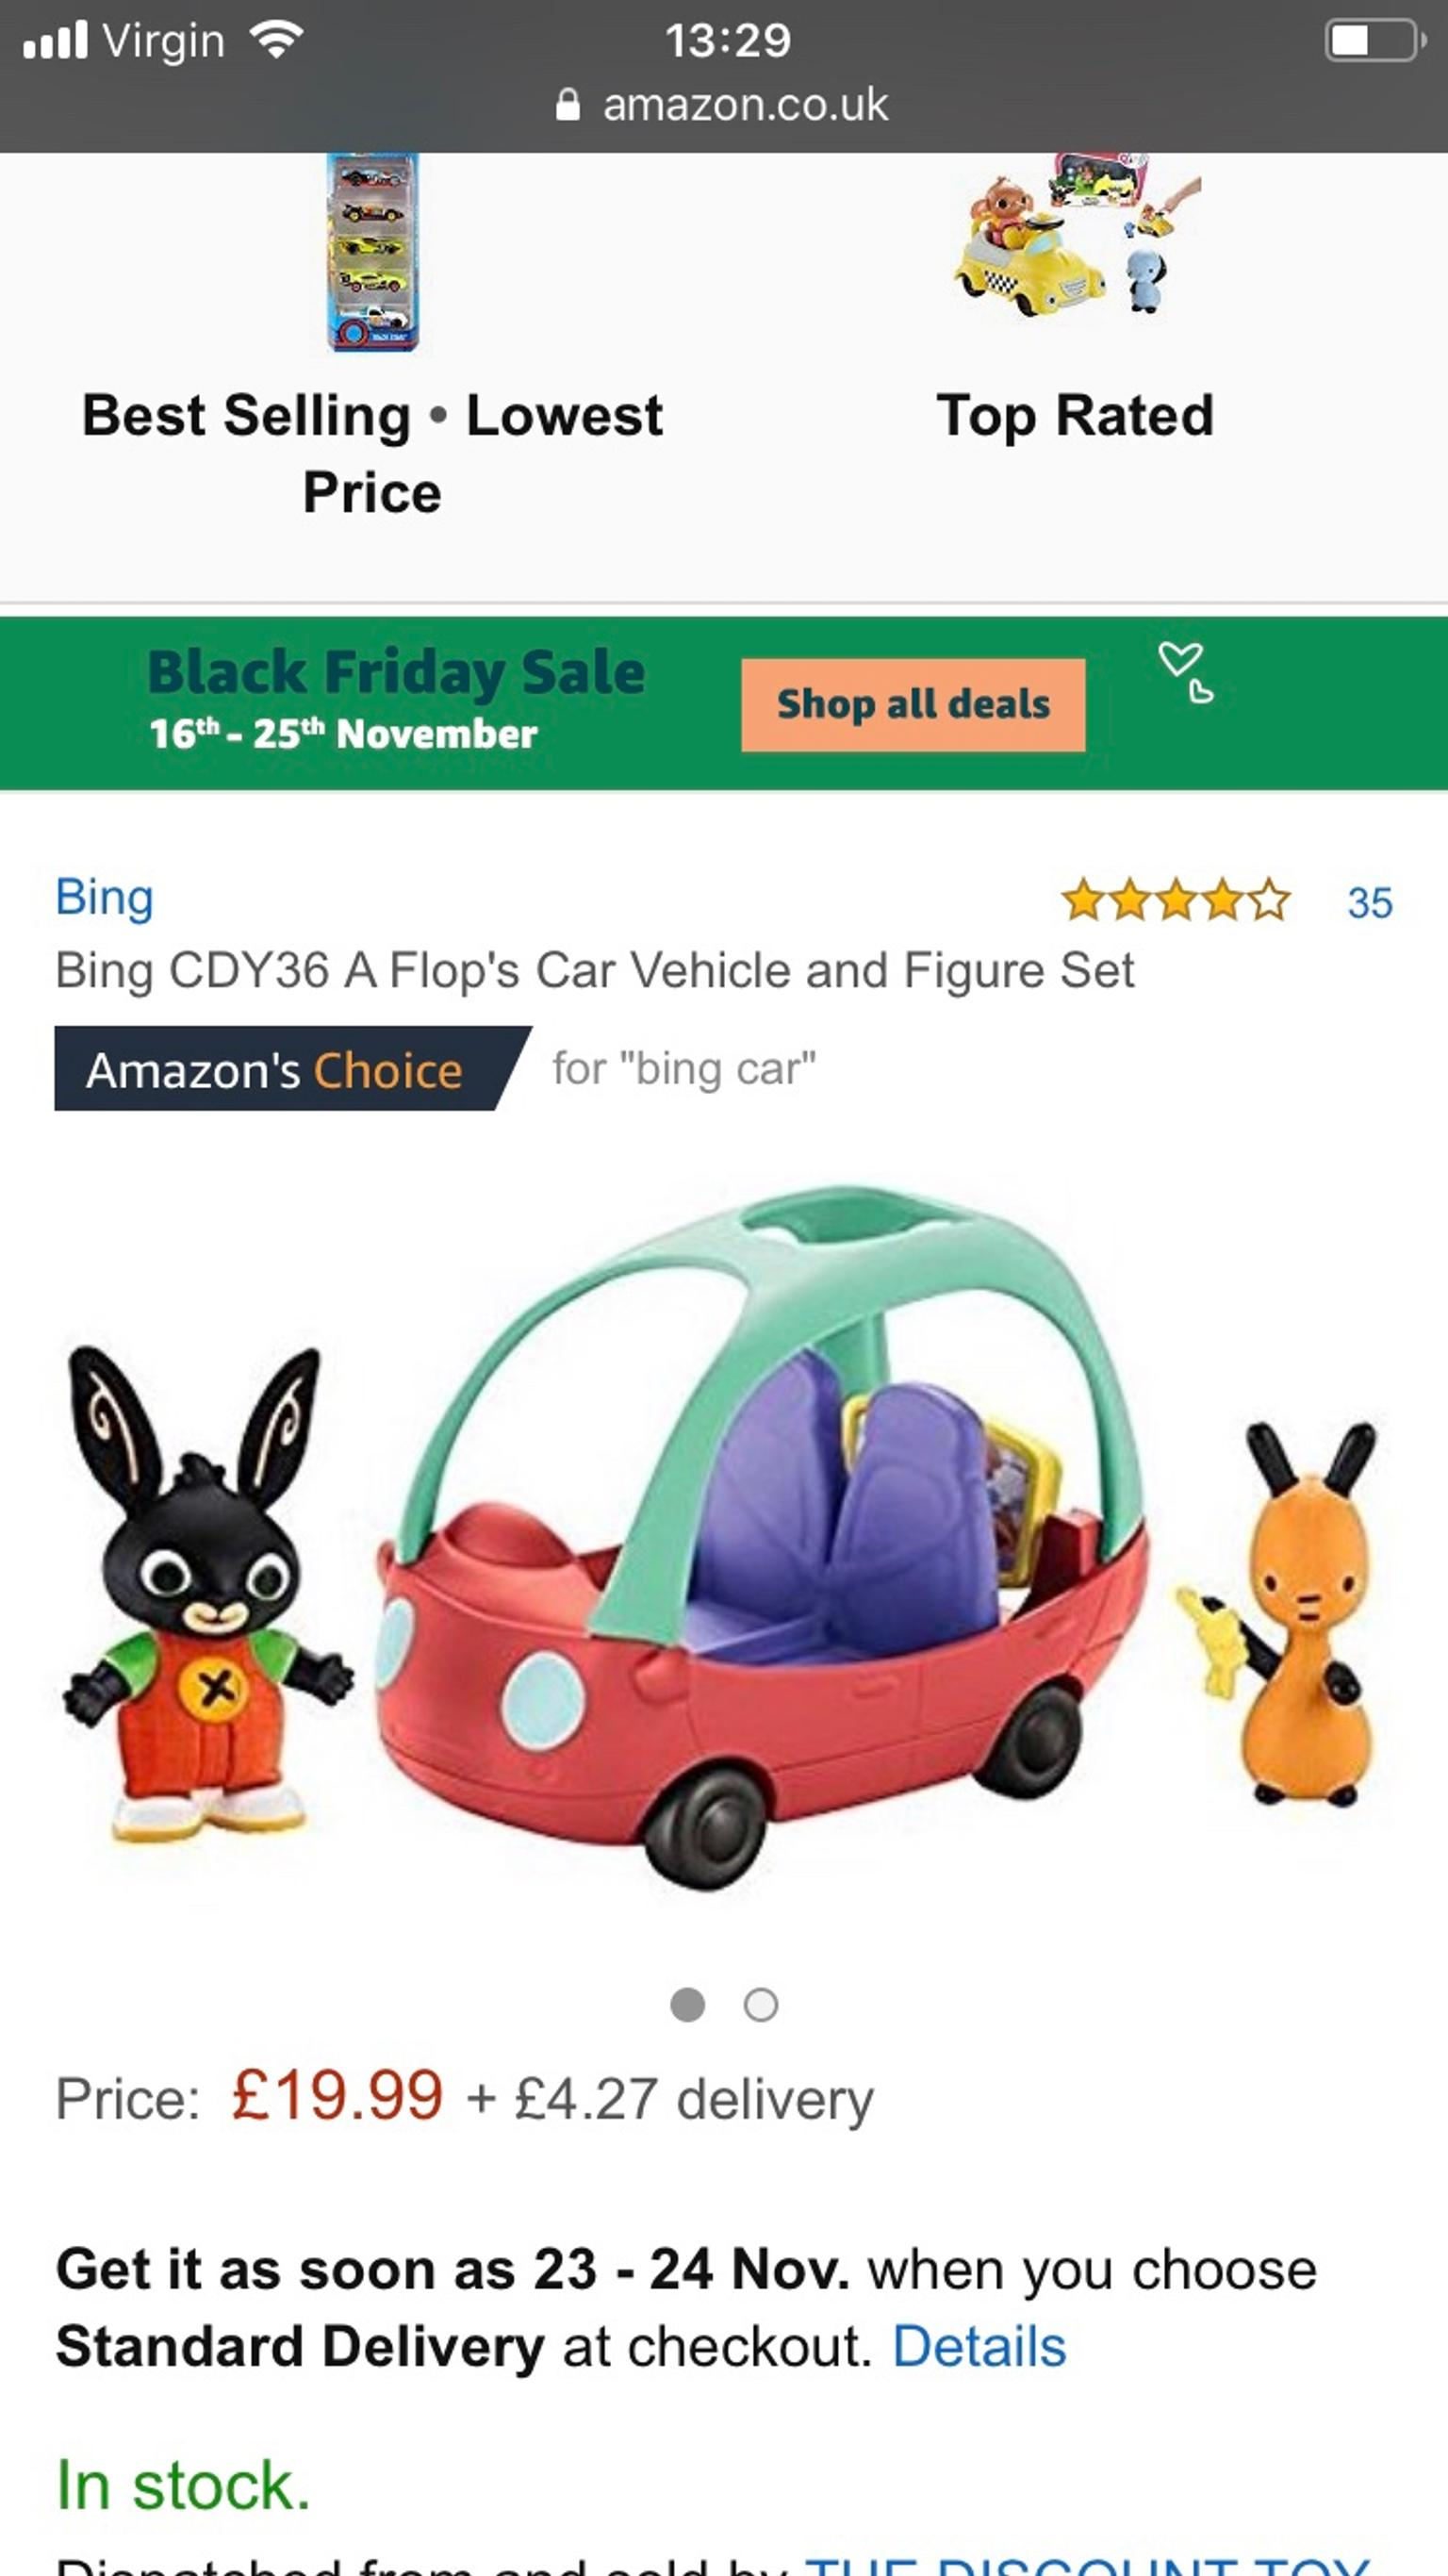 Bing and Flop vehicle and figure set